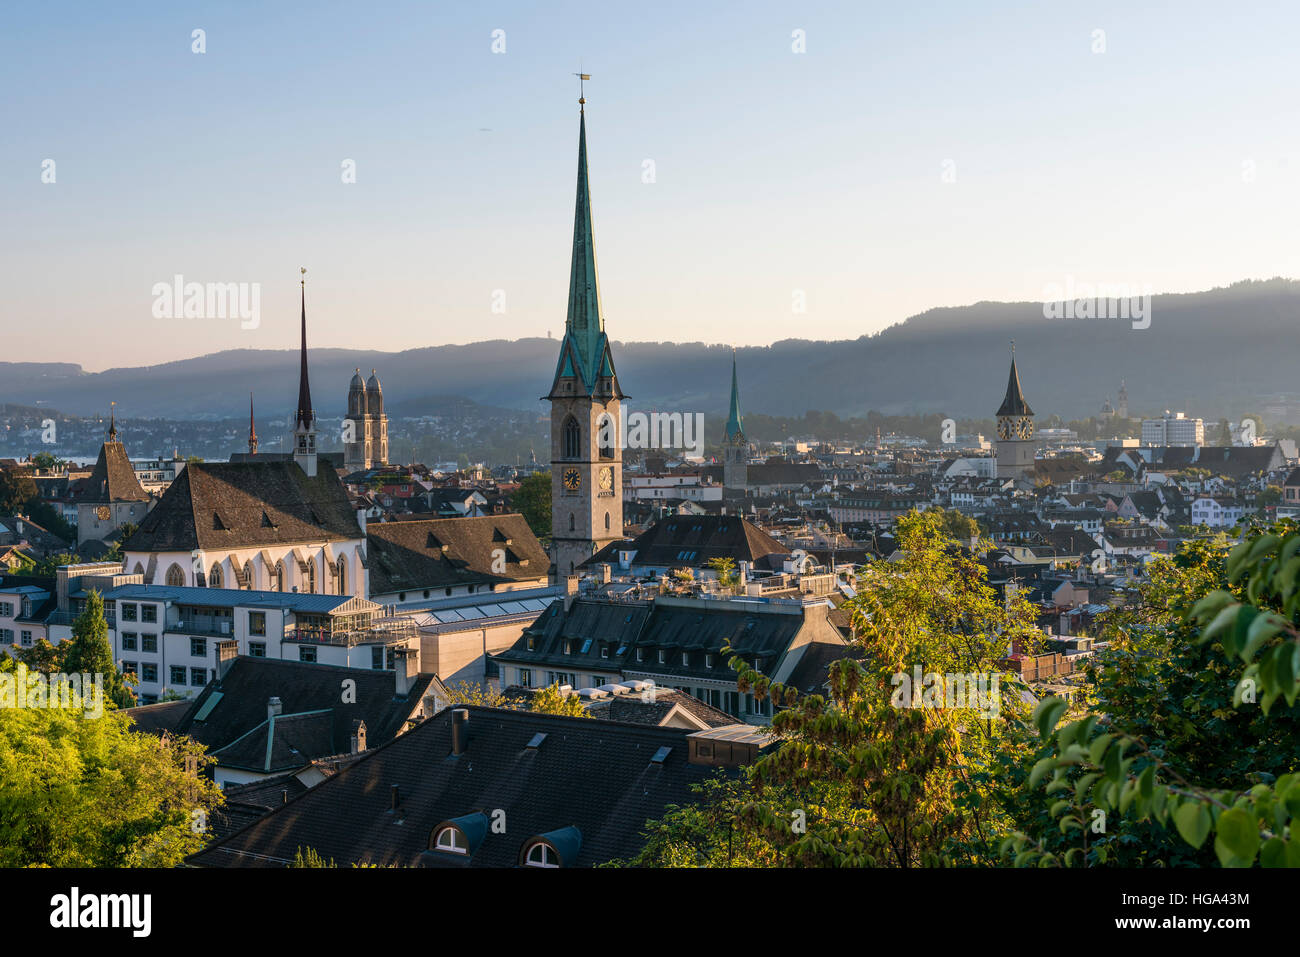 Zurich city panorama with Grossmunster cathedral, Predigerkirche, Fraumunster and St. Peter in the setting sun. - Stock Image